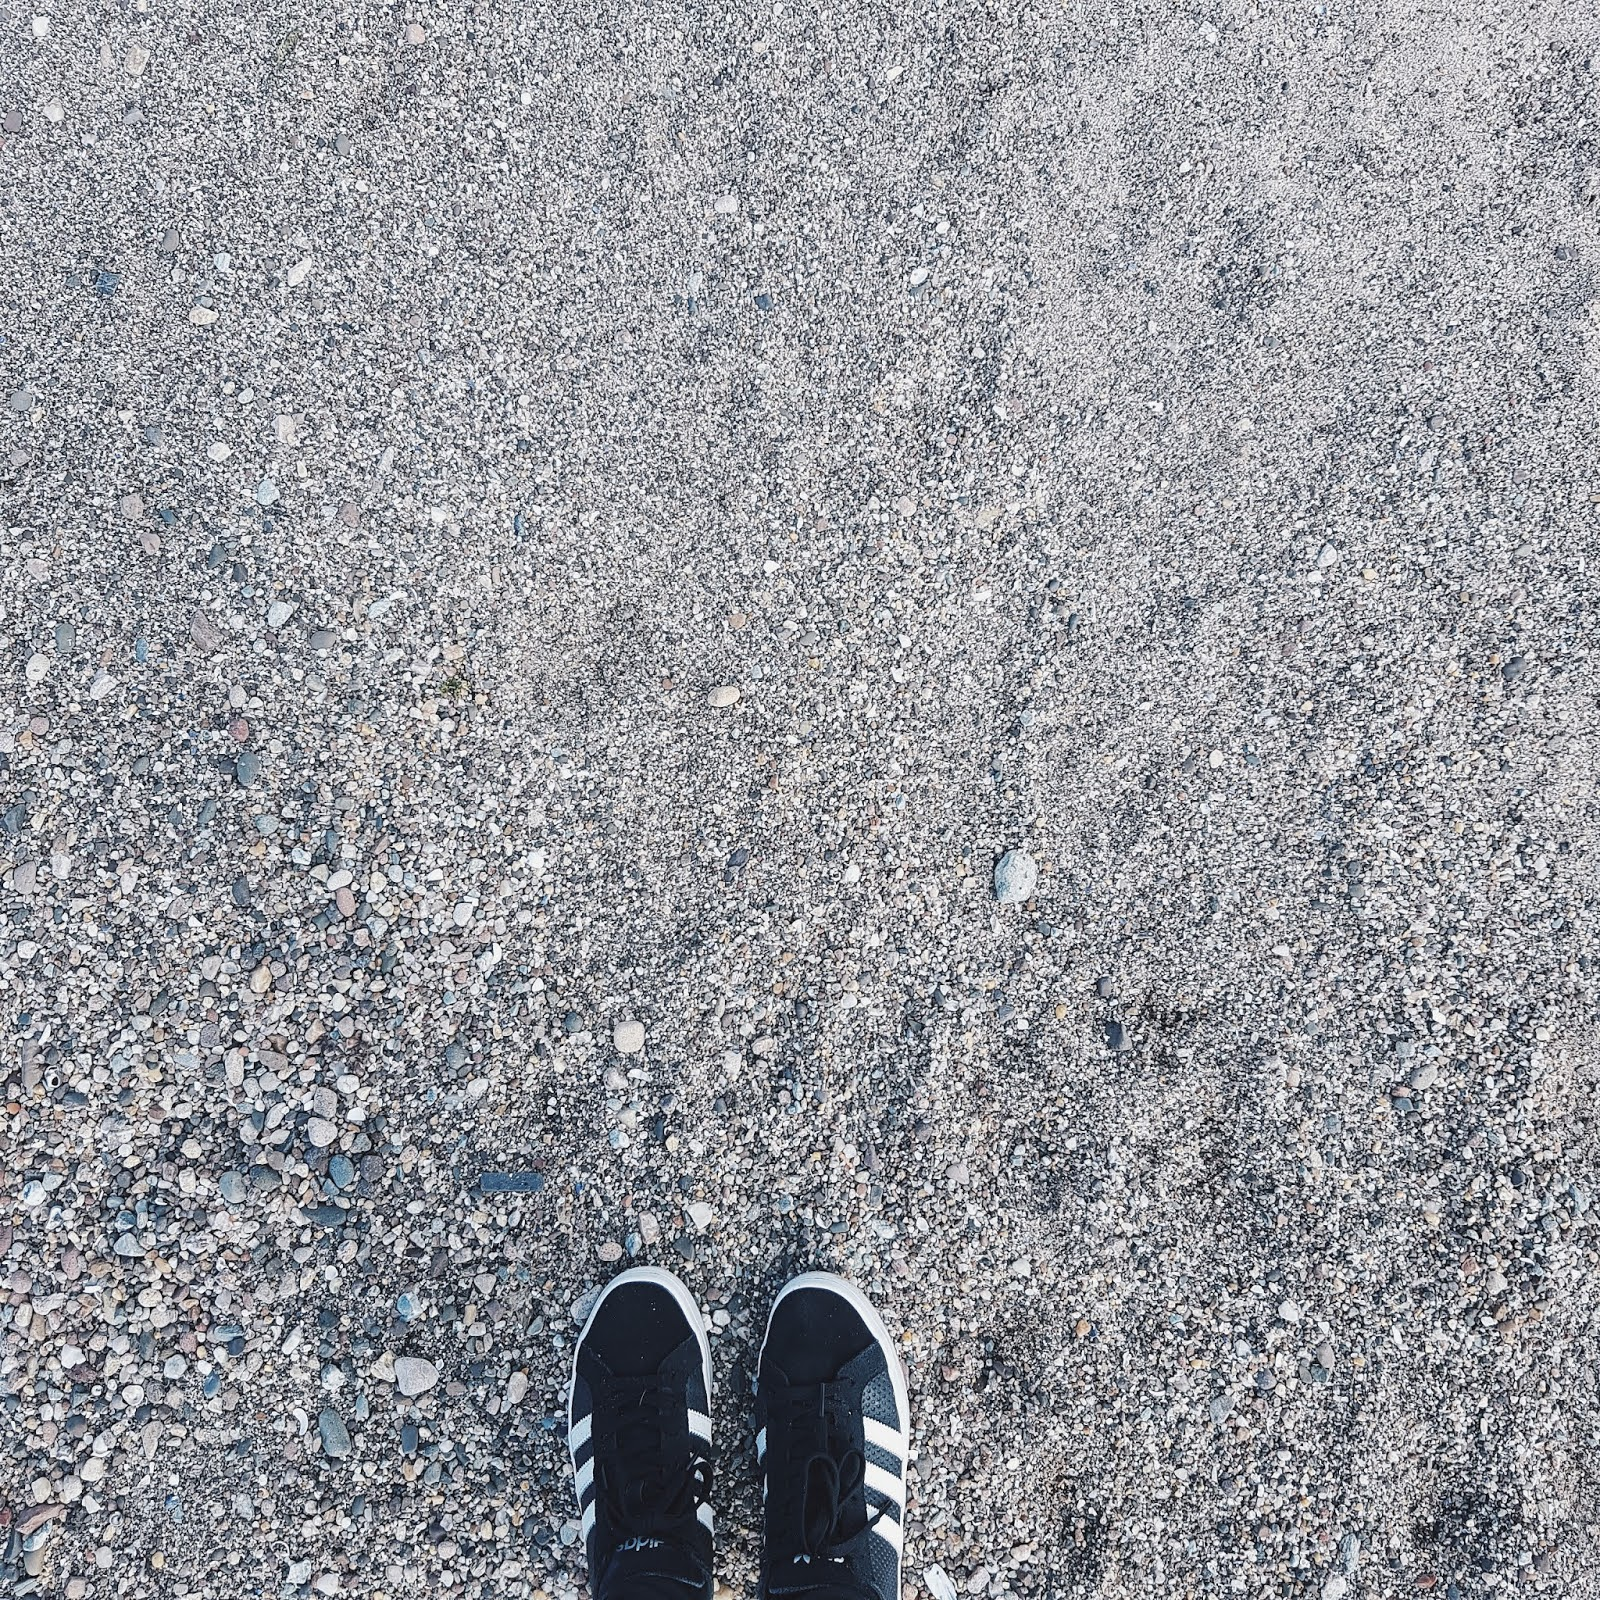 Shoes Stood on a Stone Beach